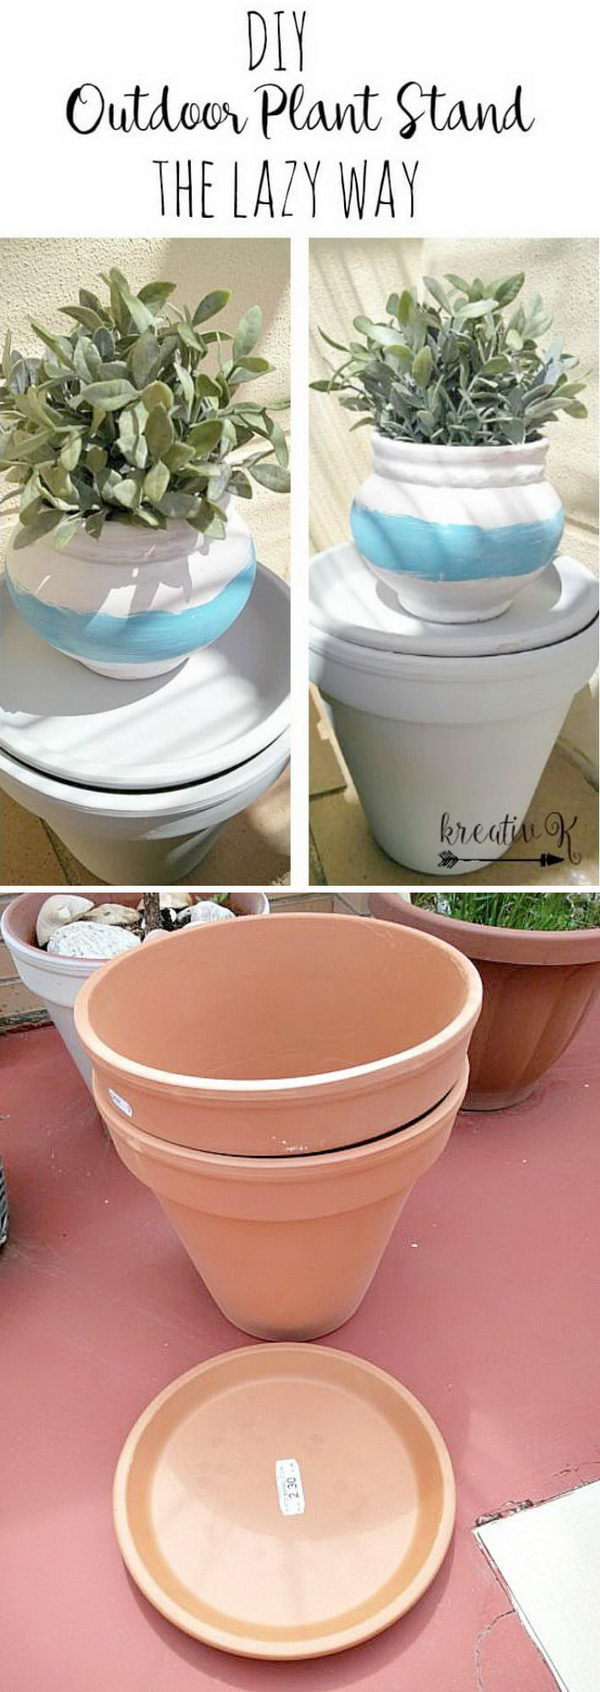 DIY Clay Pot Turned Plant Stand.